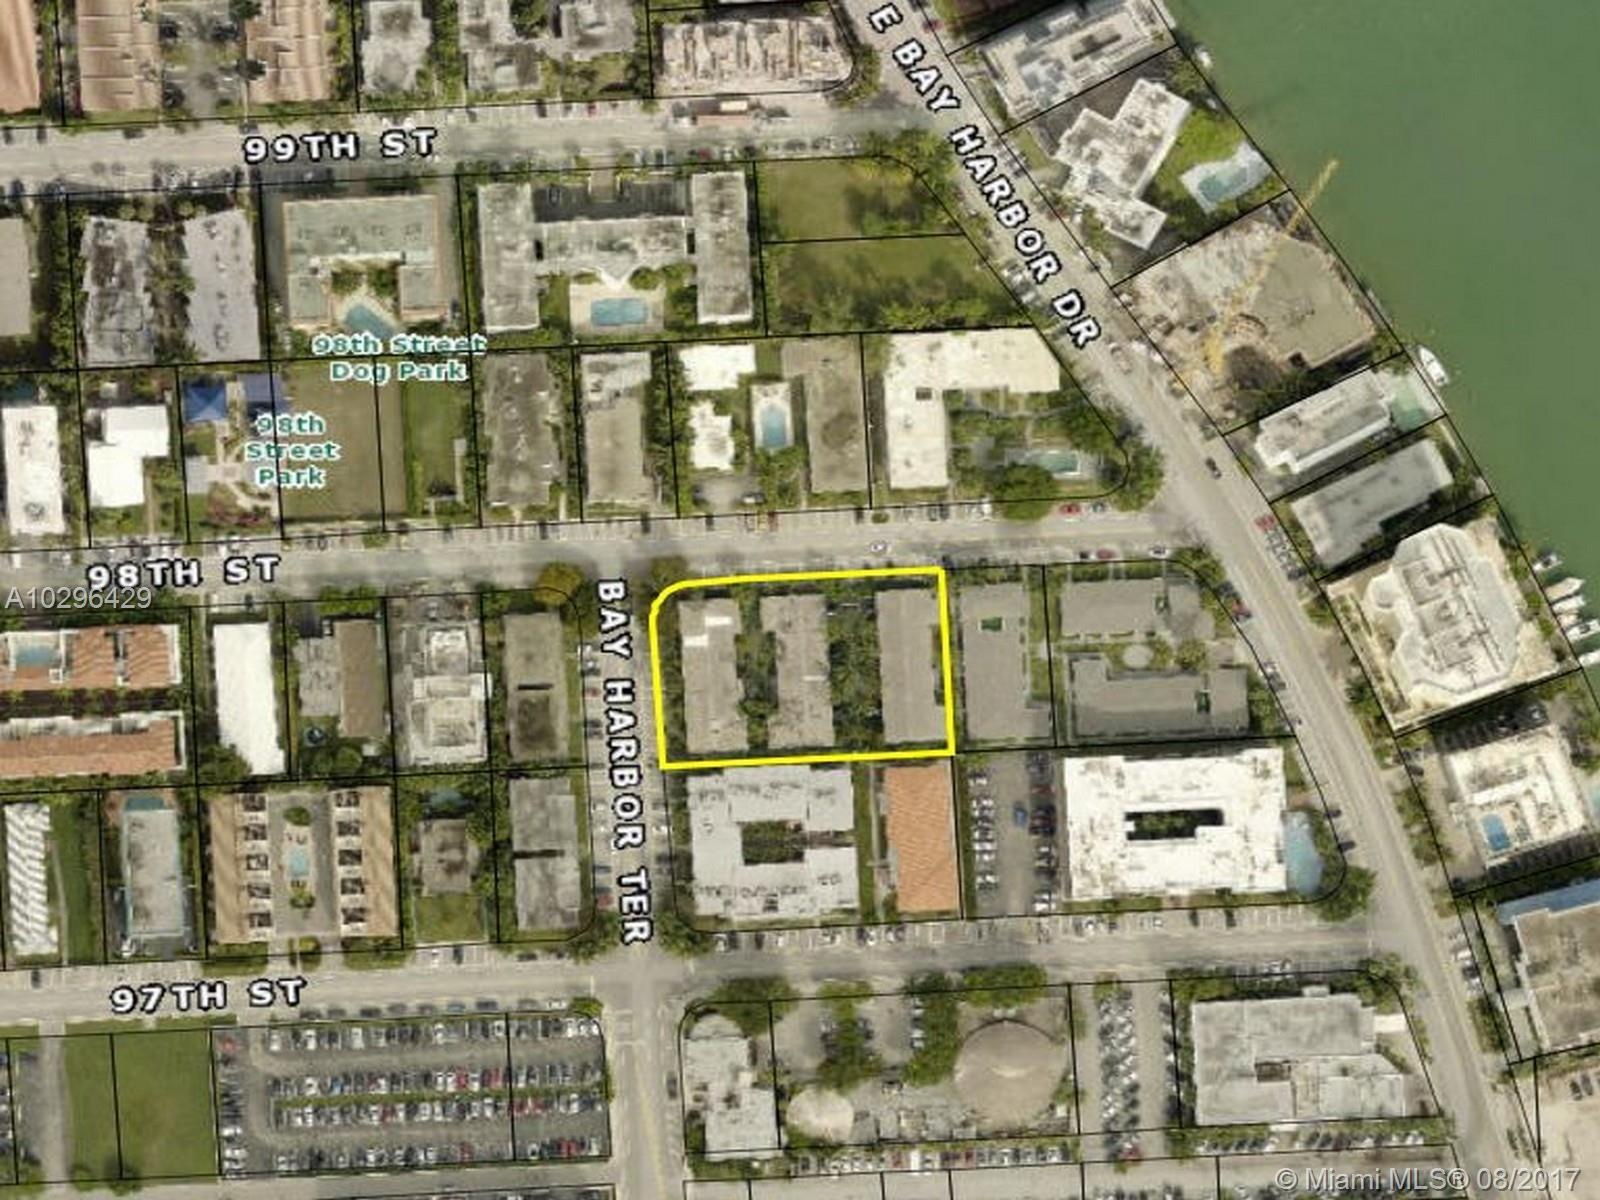 1070  98 St  For Sale A10296429, FL